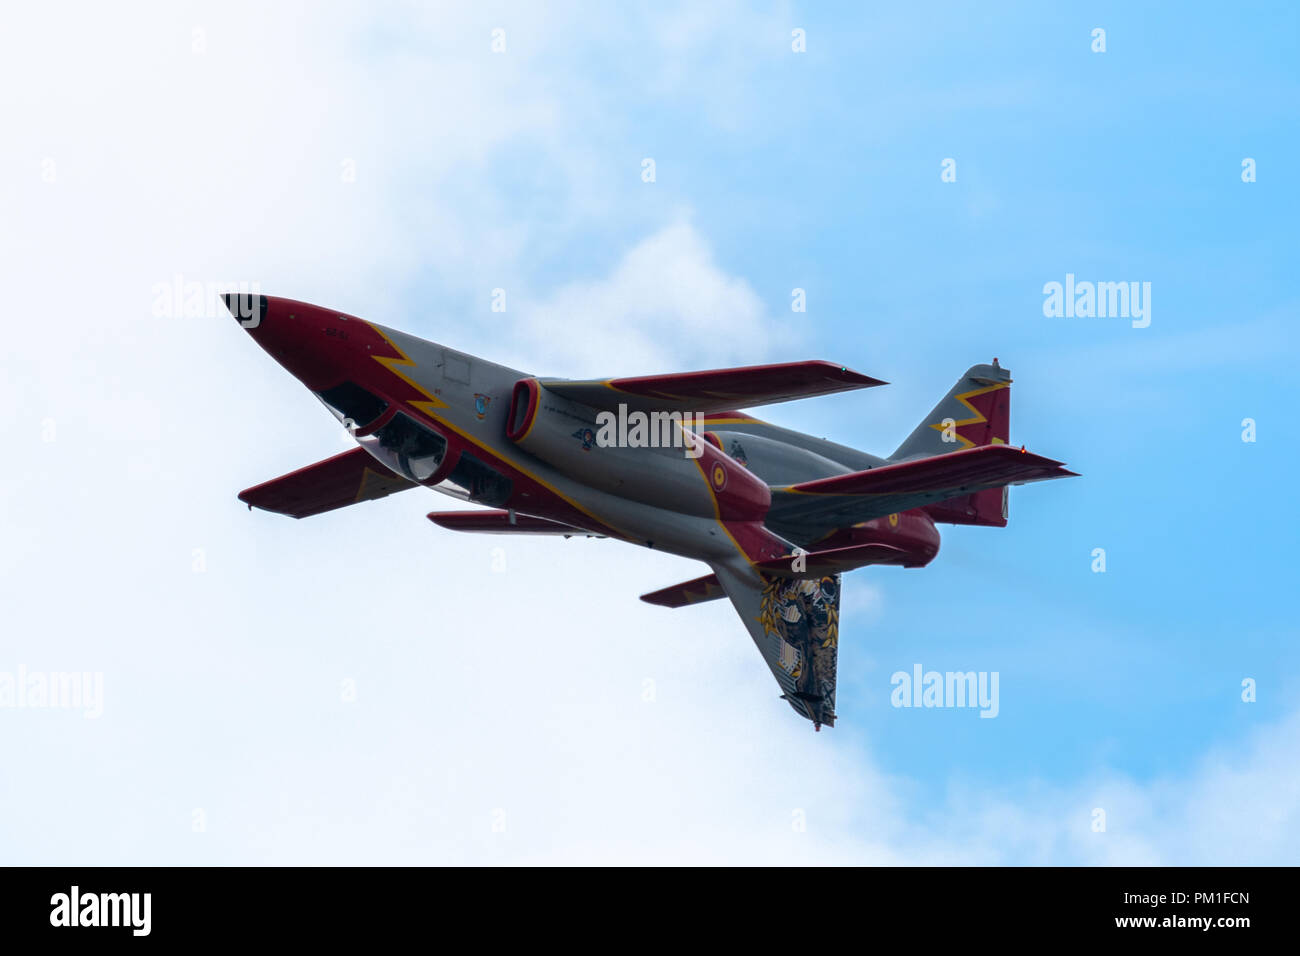 FAIRFORD, UK, JULY 13 2018: A photograph documenting athe Patrulla Aguila from the Spanish Air Force displaying their aerobatic C-101 Aviojet aircraft - Stock Image